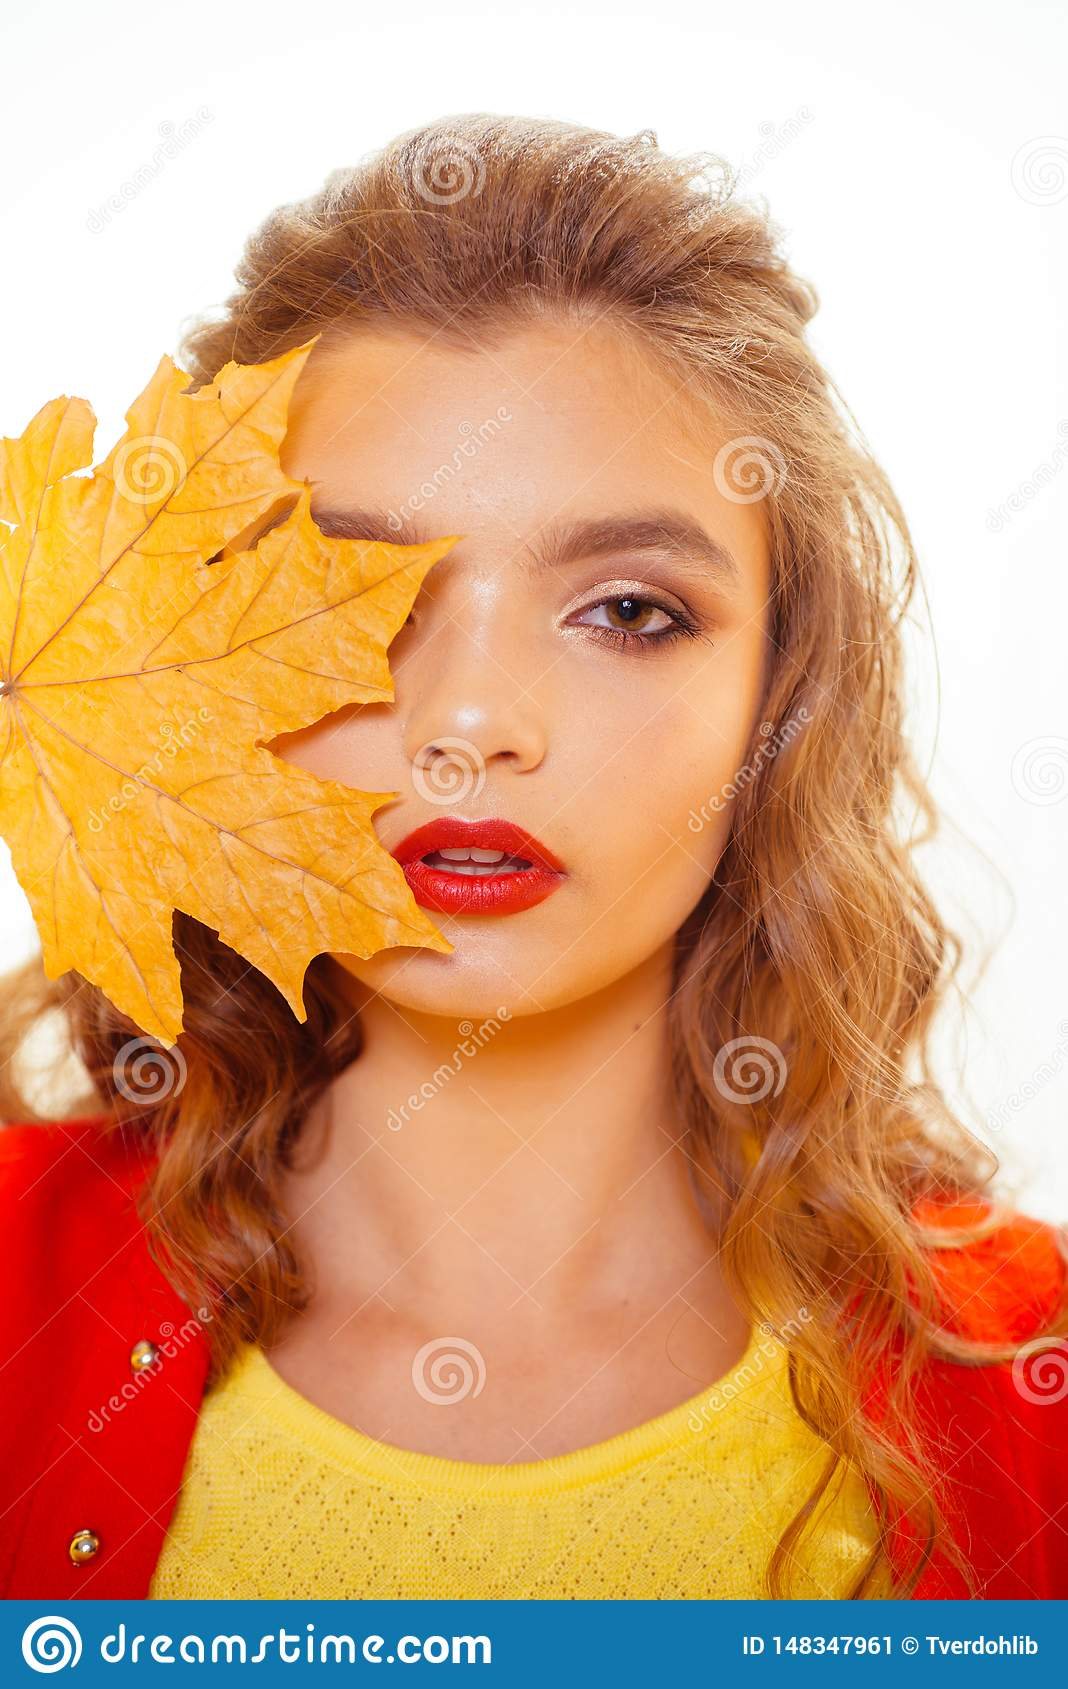 The dramatic nature of the red lipstick. Pretty girl cover face with autumn leaf. Fashion model with decorative fall